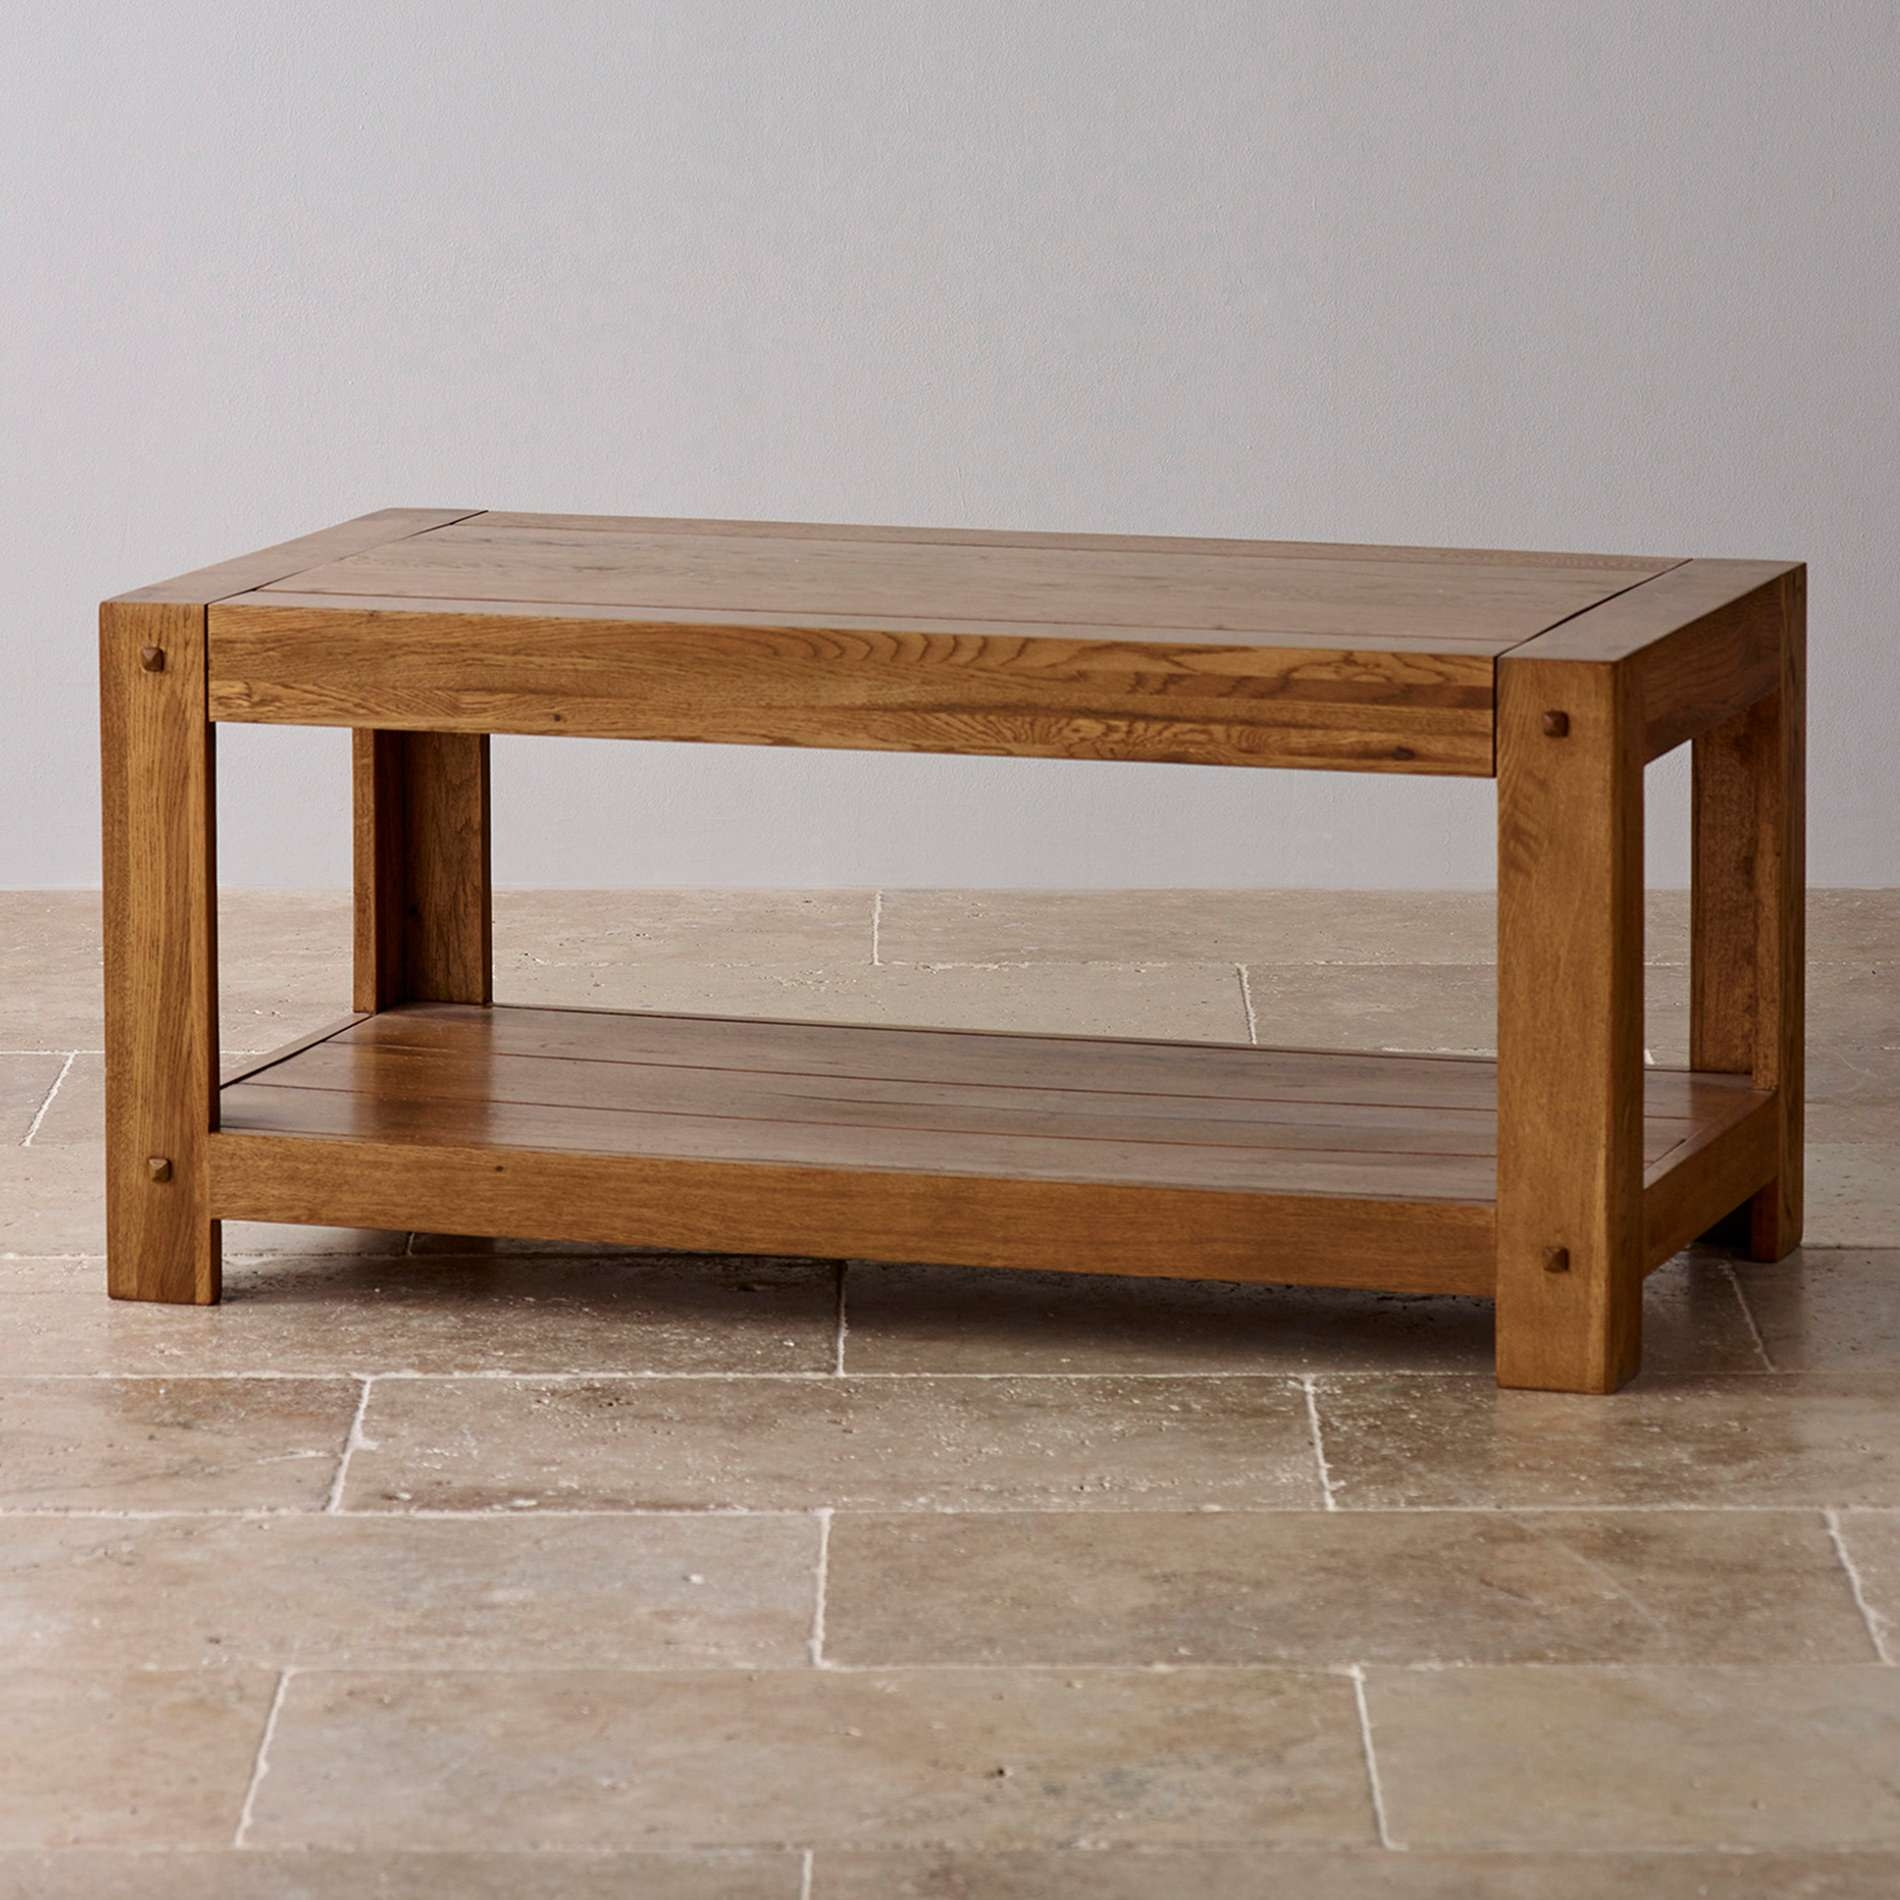 Well Known Chunky Oak Coffee Tables Intended For What Kind Of Floor Tiles Combined With An Oak Coffee Table? — The (View 8 of 20)